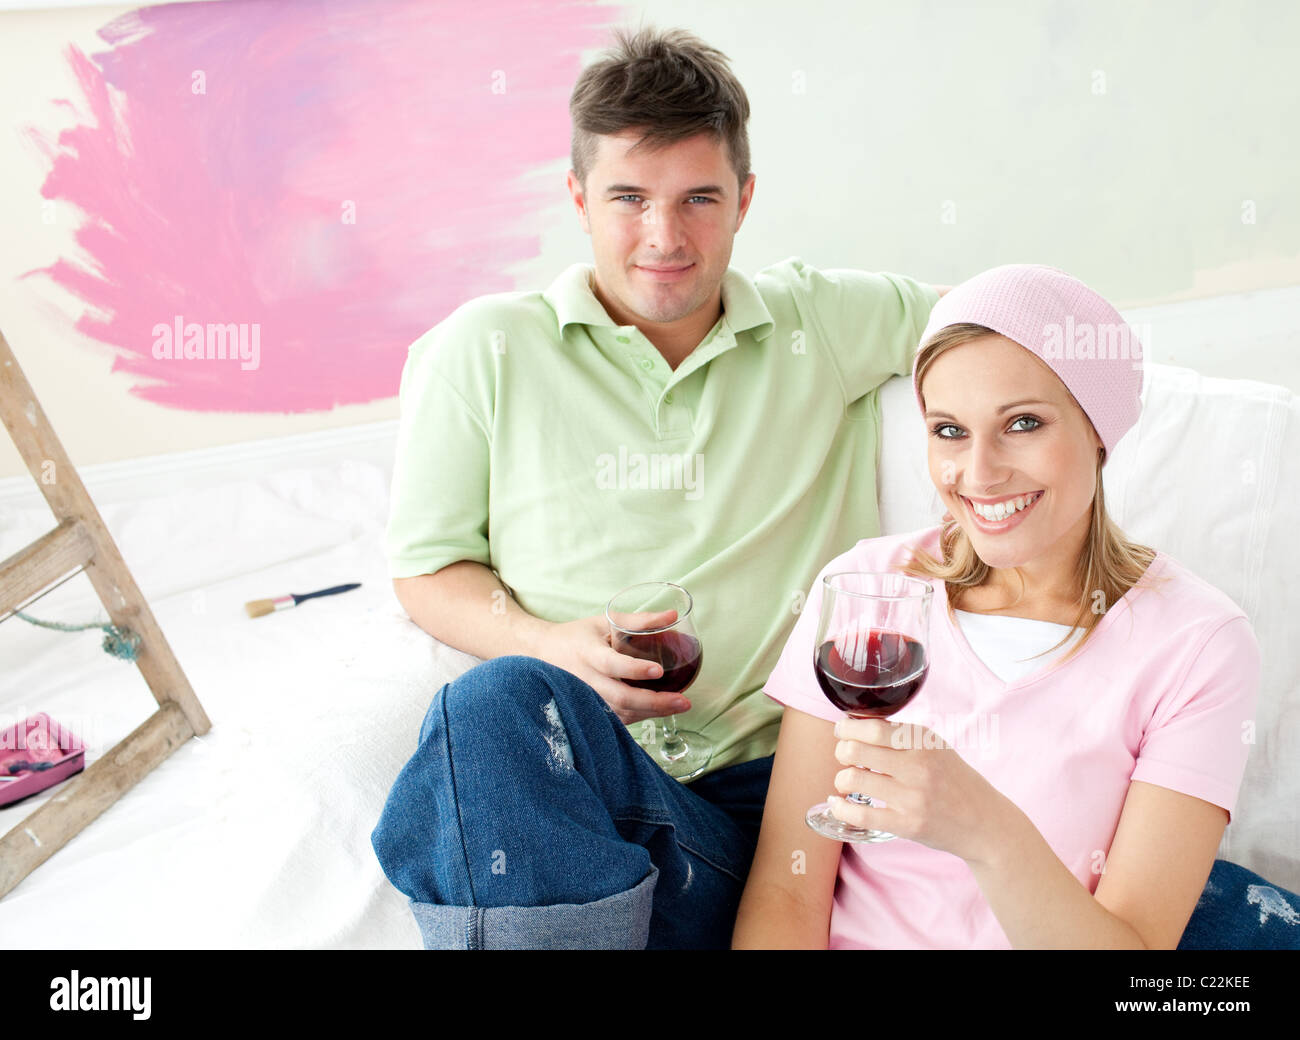 Delighted couple having free time together with a glass of wine smiling at the camera - Stock Image